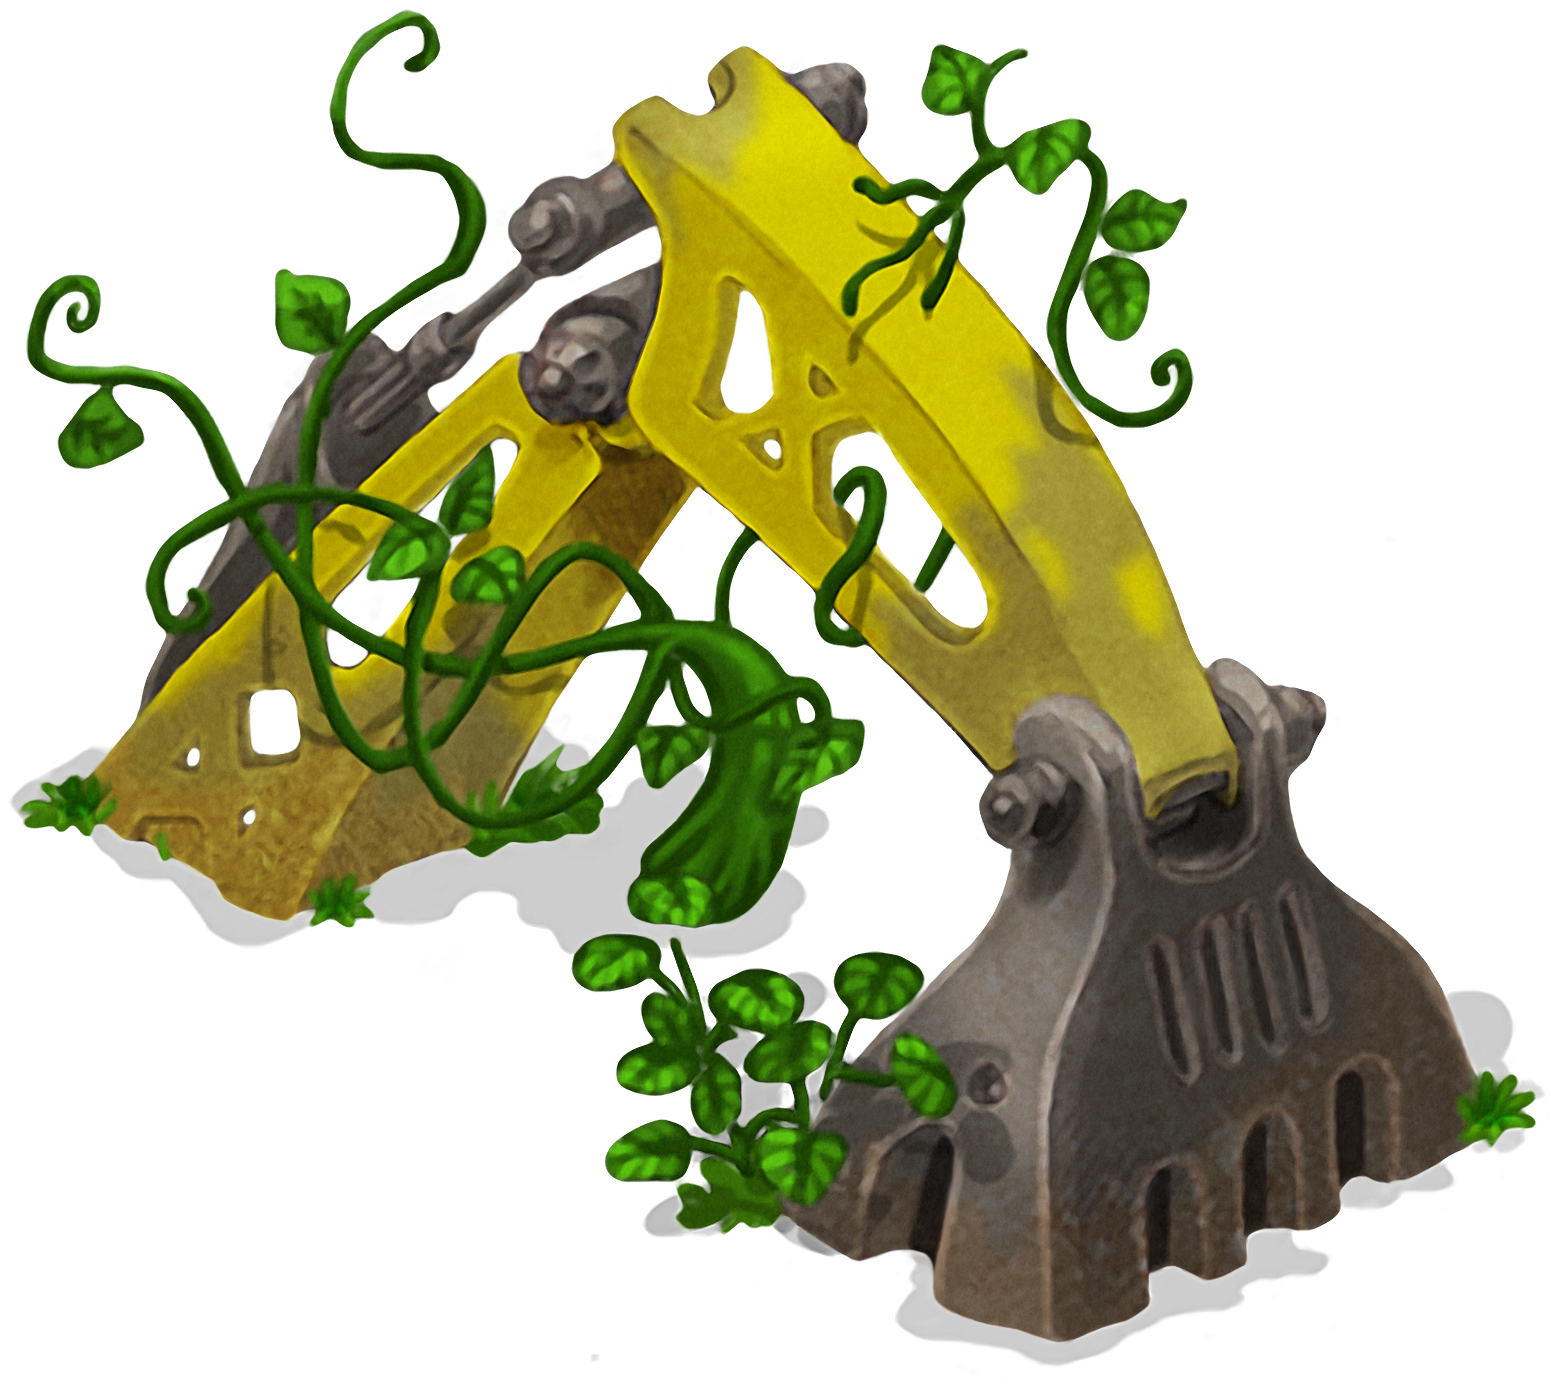 Green clipart digger. My singing monsters wiki